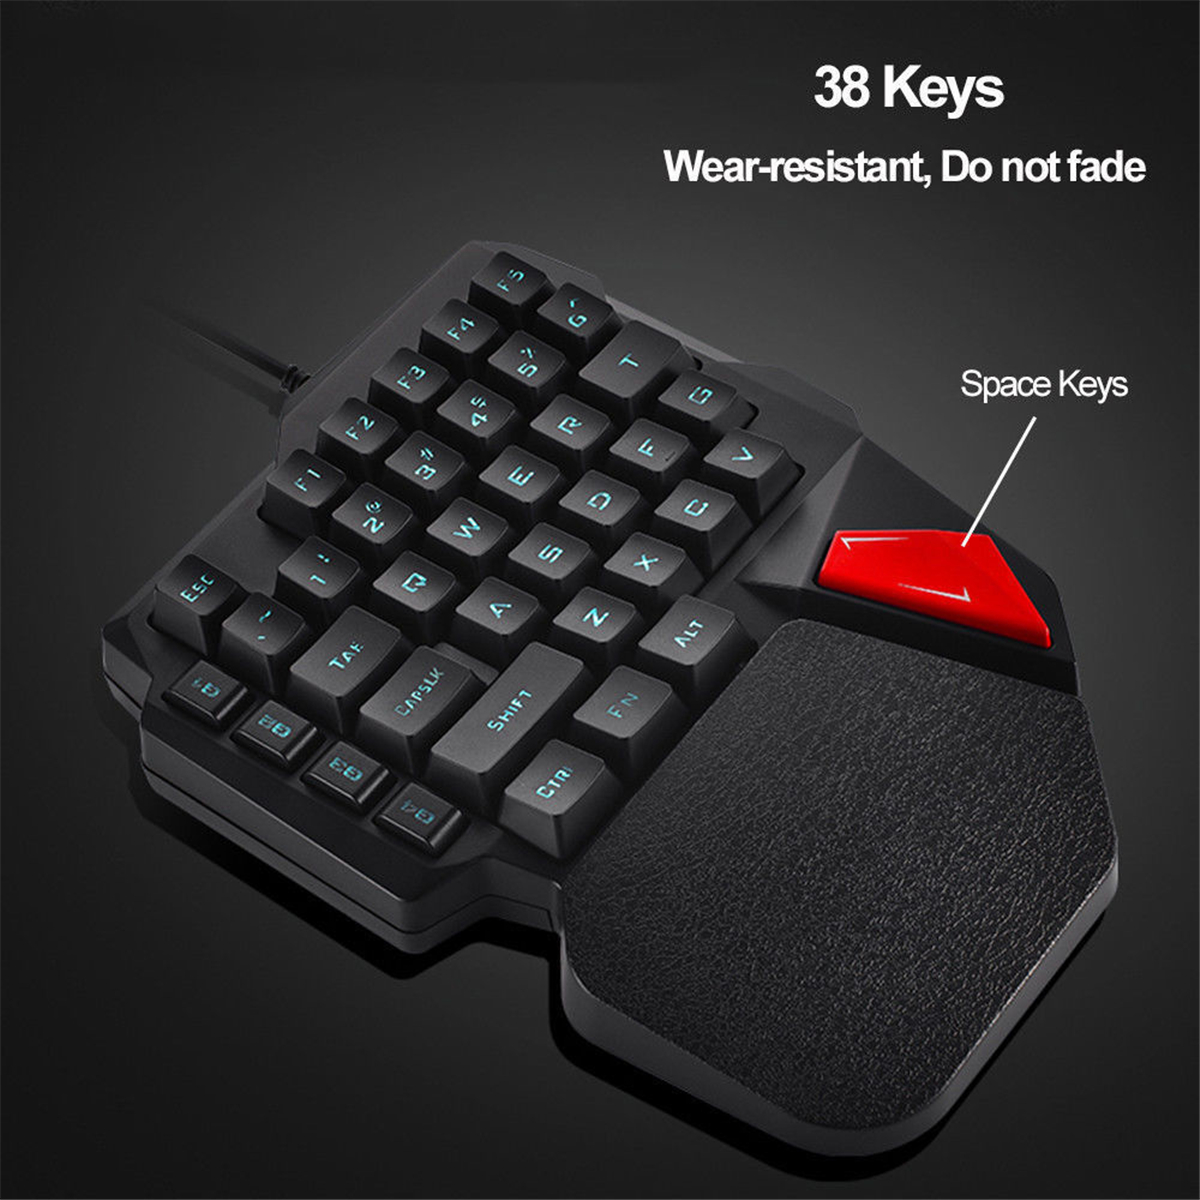 K108 Mini USB Wired 38 Keys LED Backlit Ergonomic Single Hand Keypad Gaming Keyboard